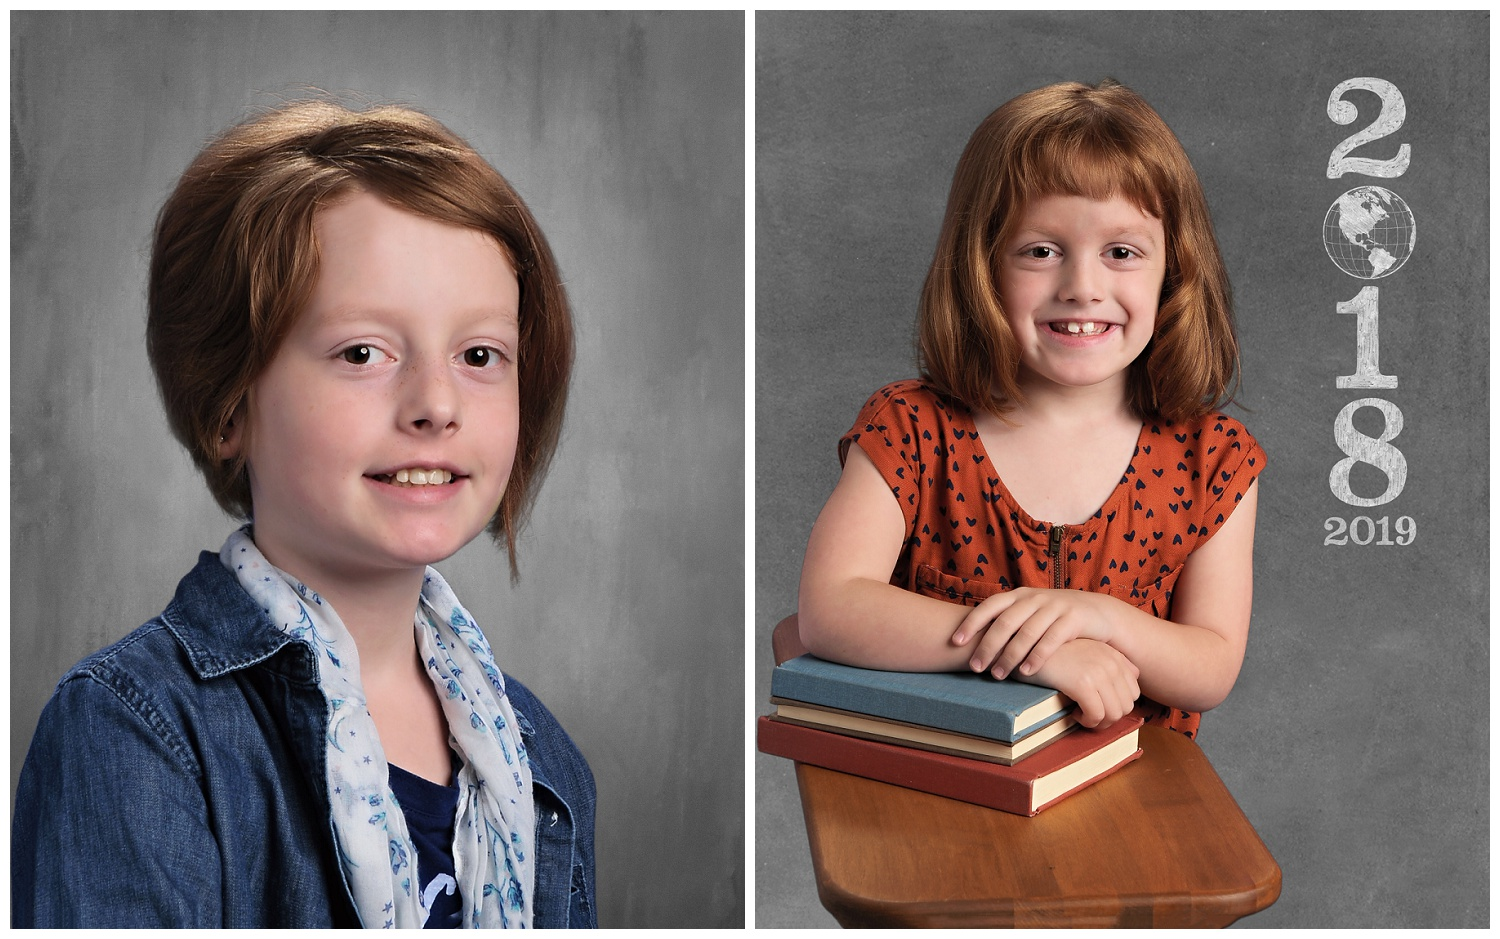 OFFICIAL SCHOOL PICTURES